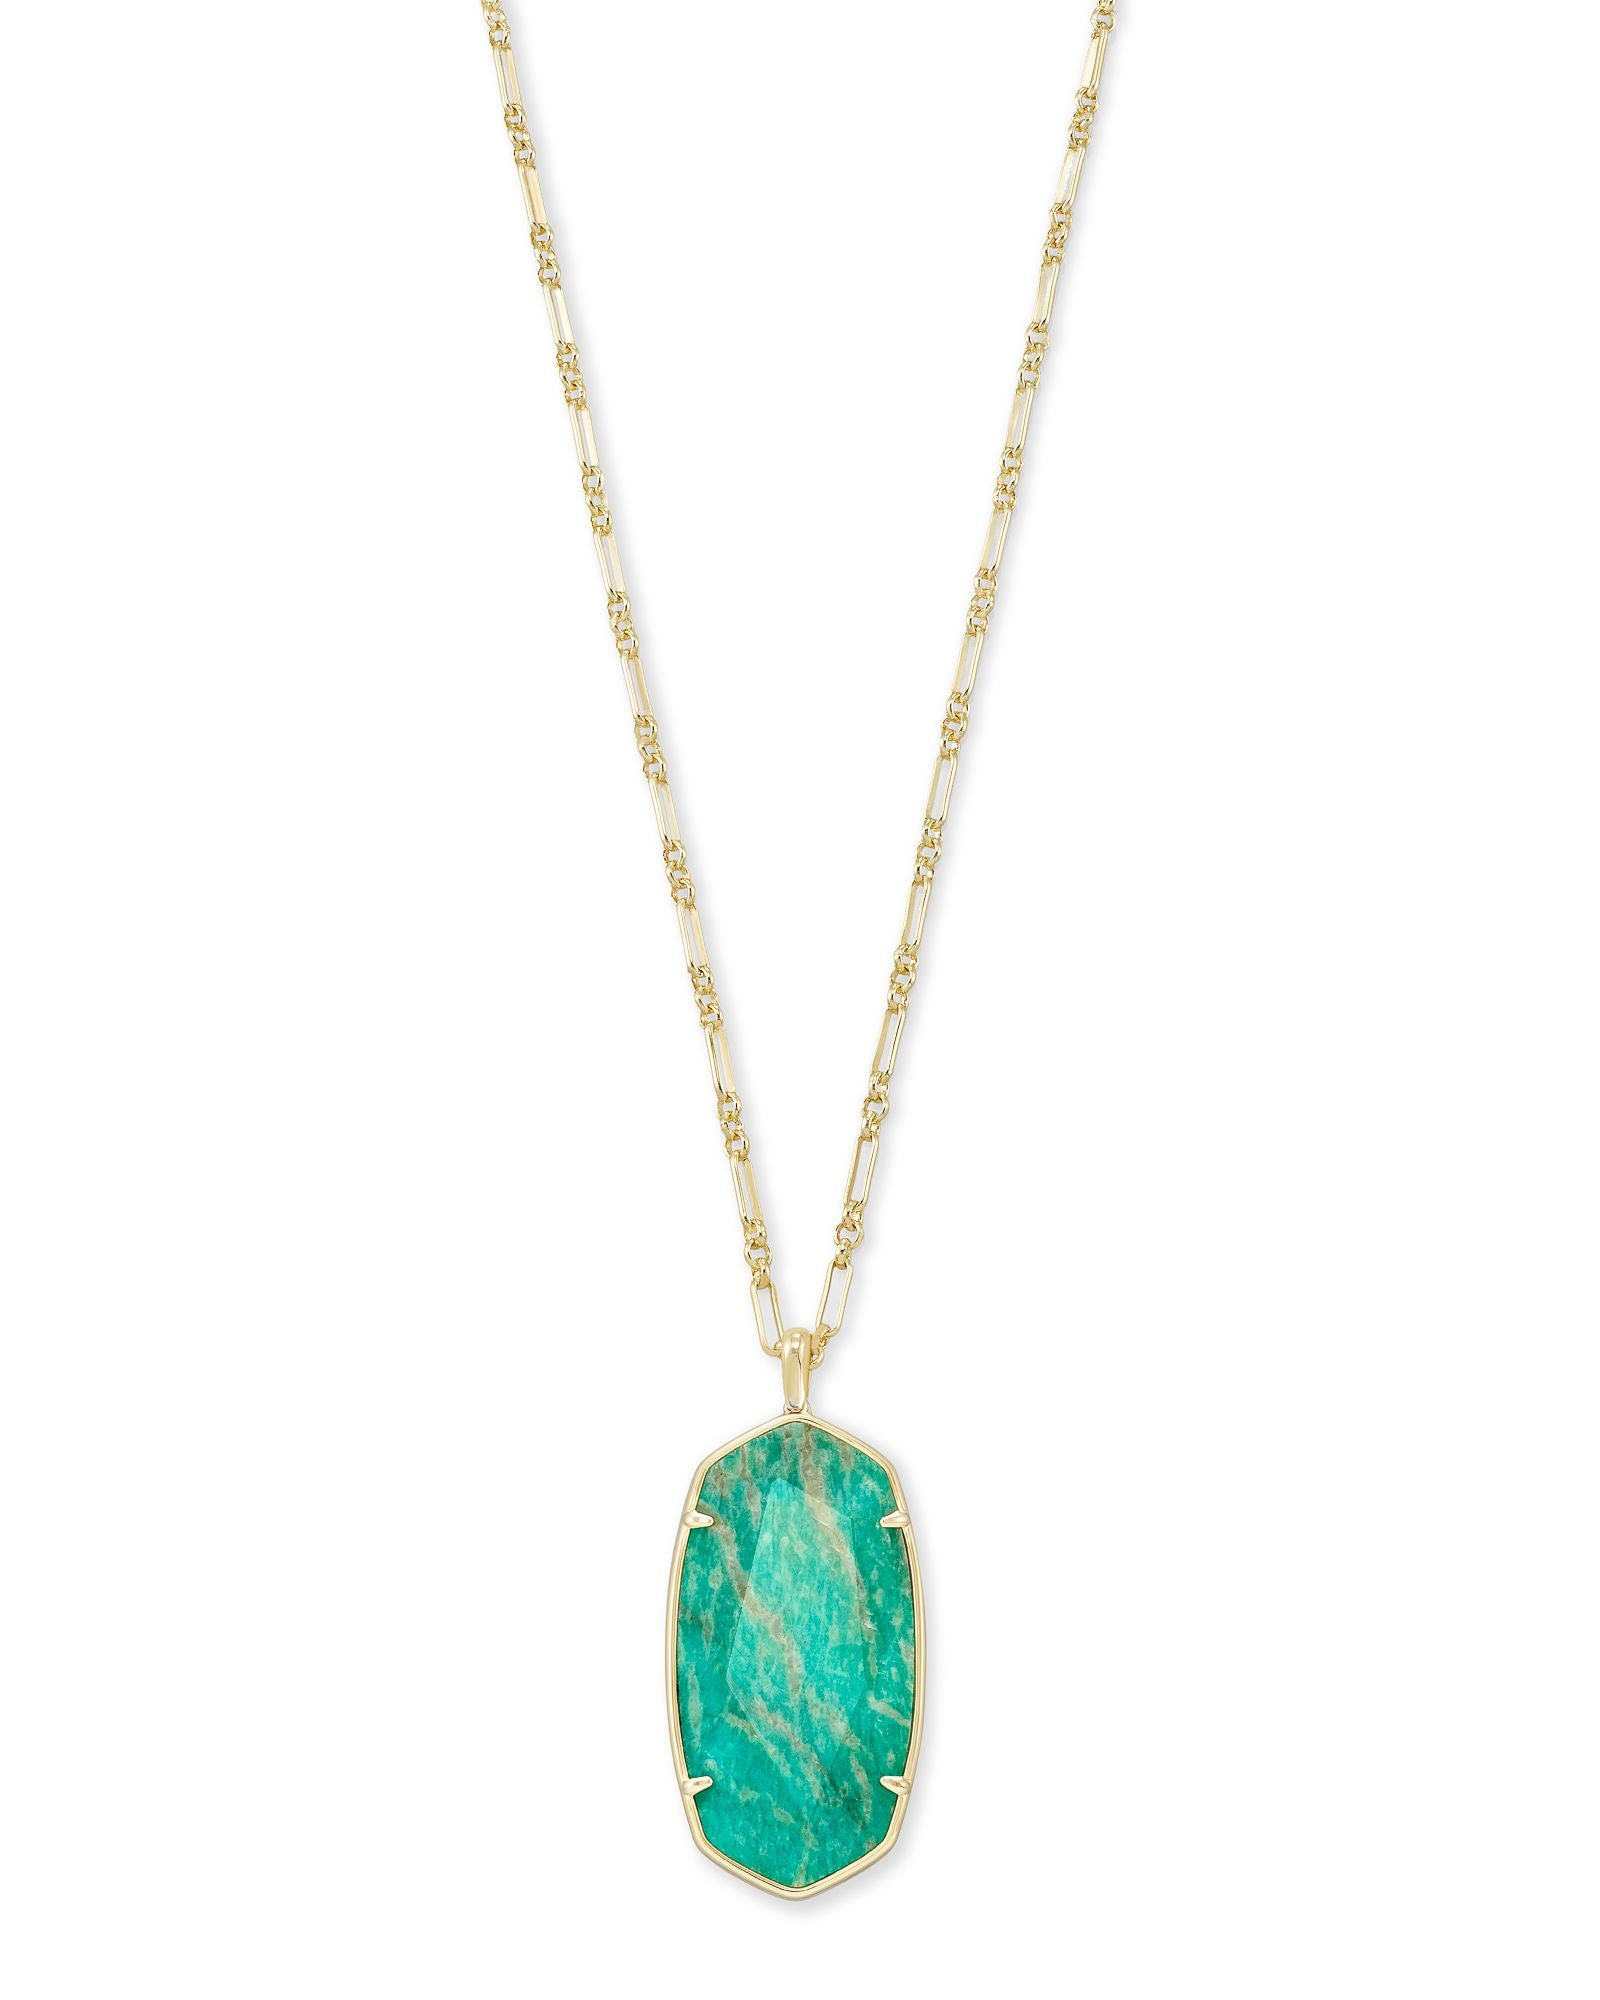 Faceted Reid Necklace Gold Dark Teal Amazonite